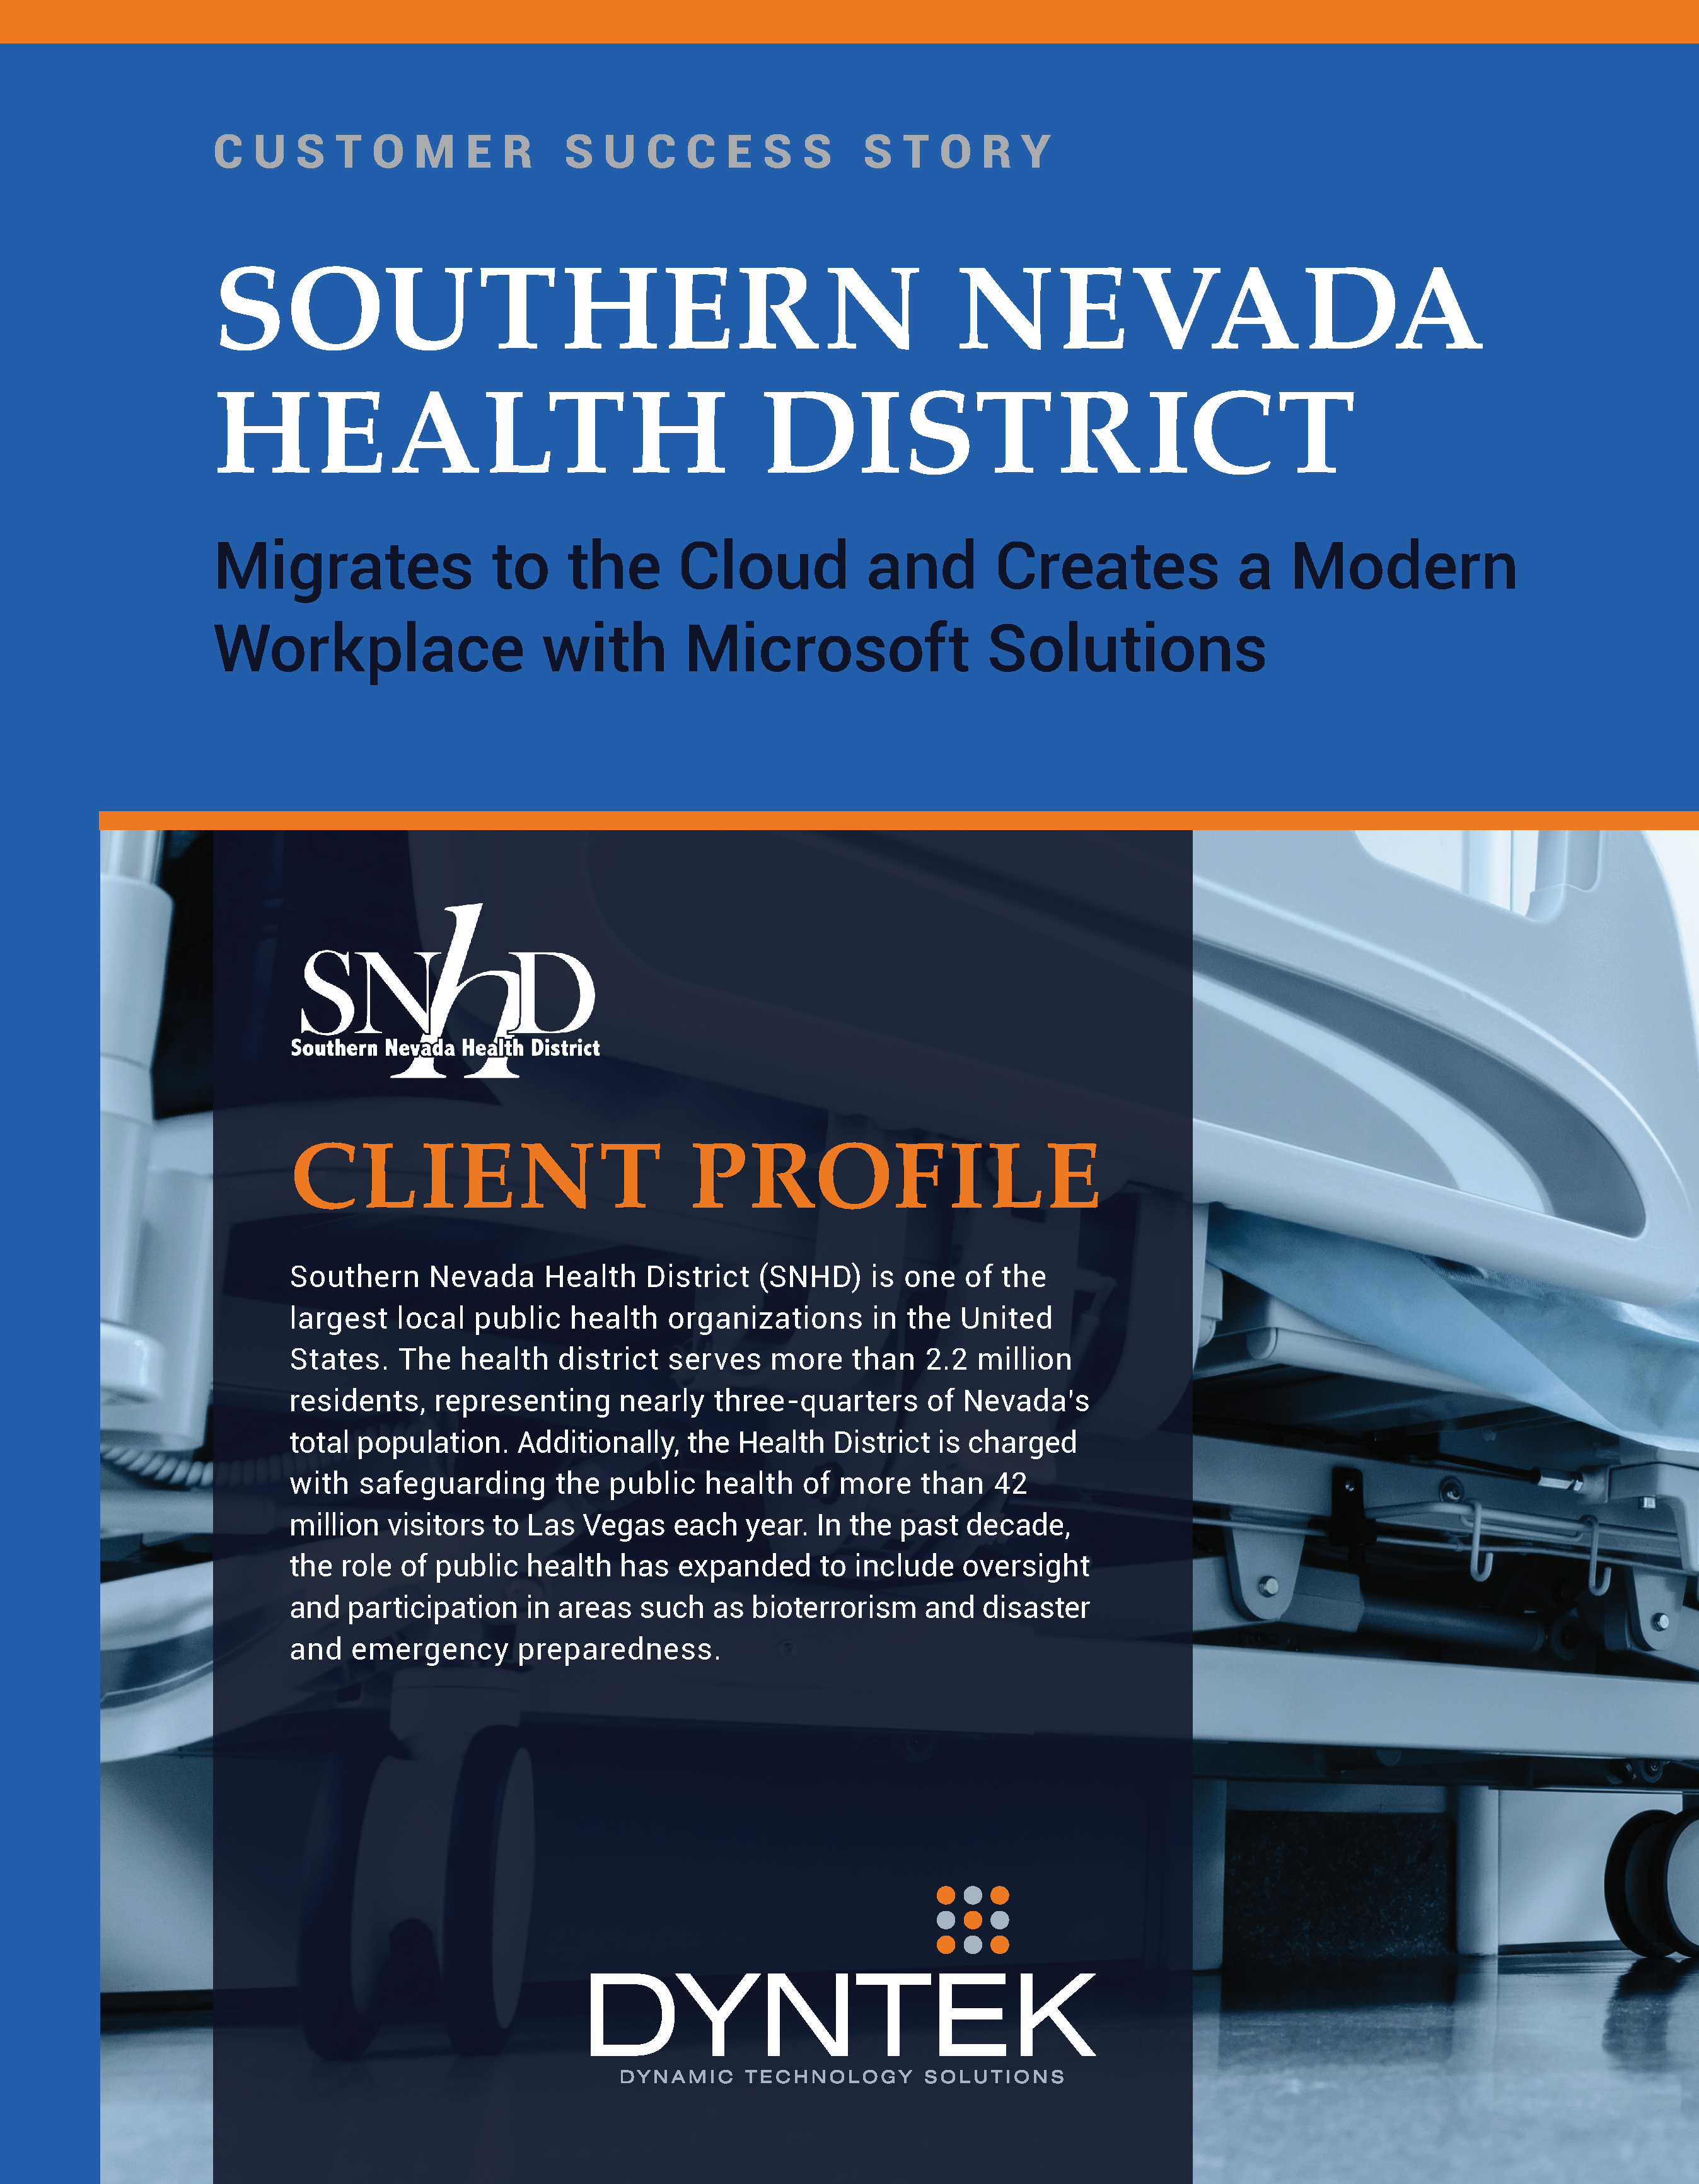 SNHD Case Study_Page_1